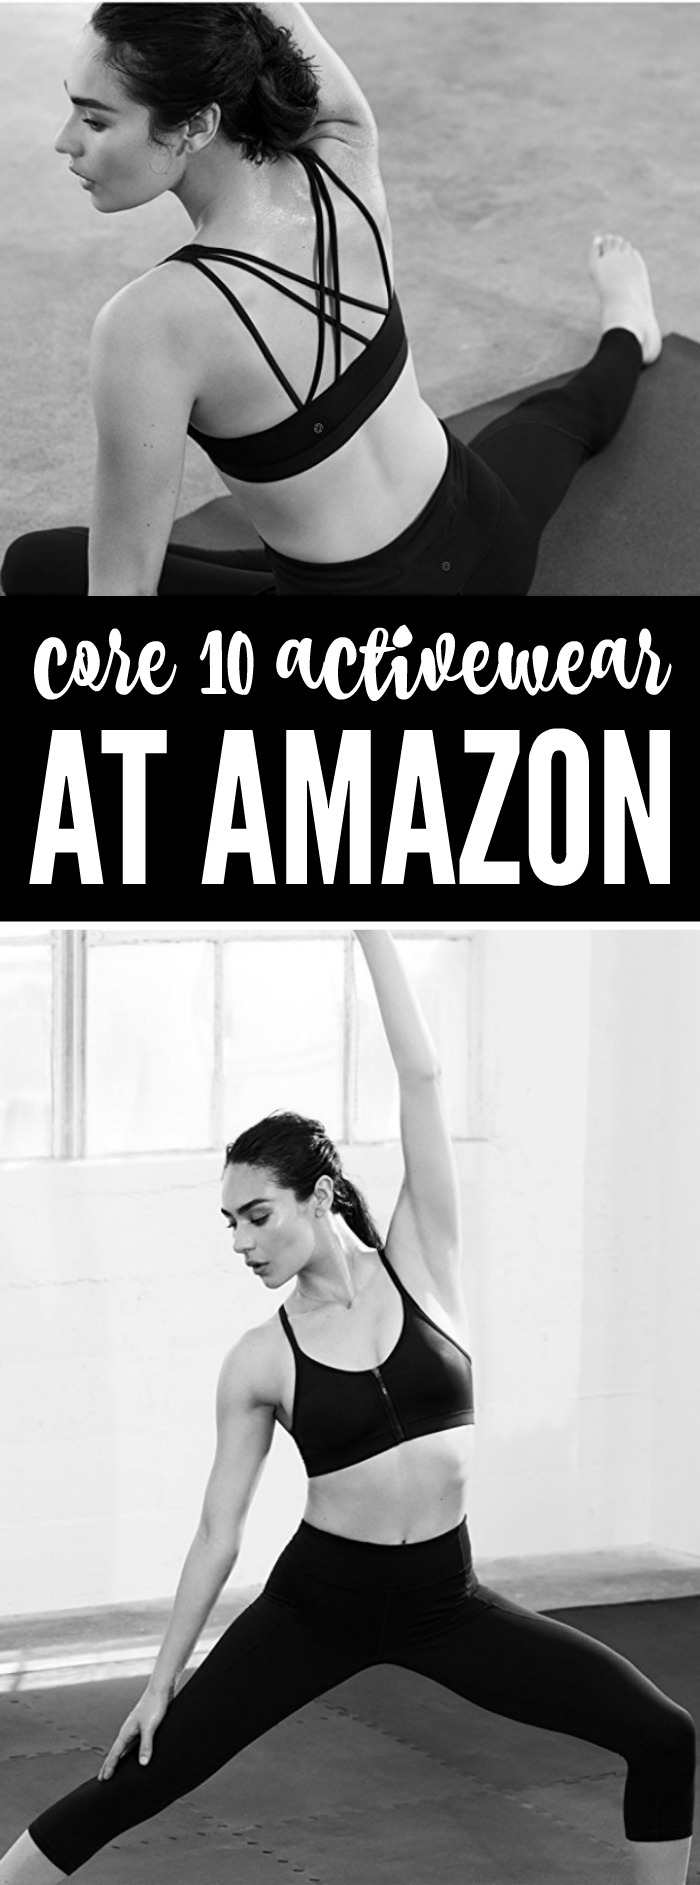 Core 10 Activewear at Amazon! Compare this brand to Lululemon and shop the selection of yoga pants, or pieces to wear to barre or for high intensity training!